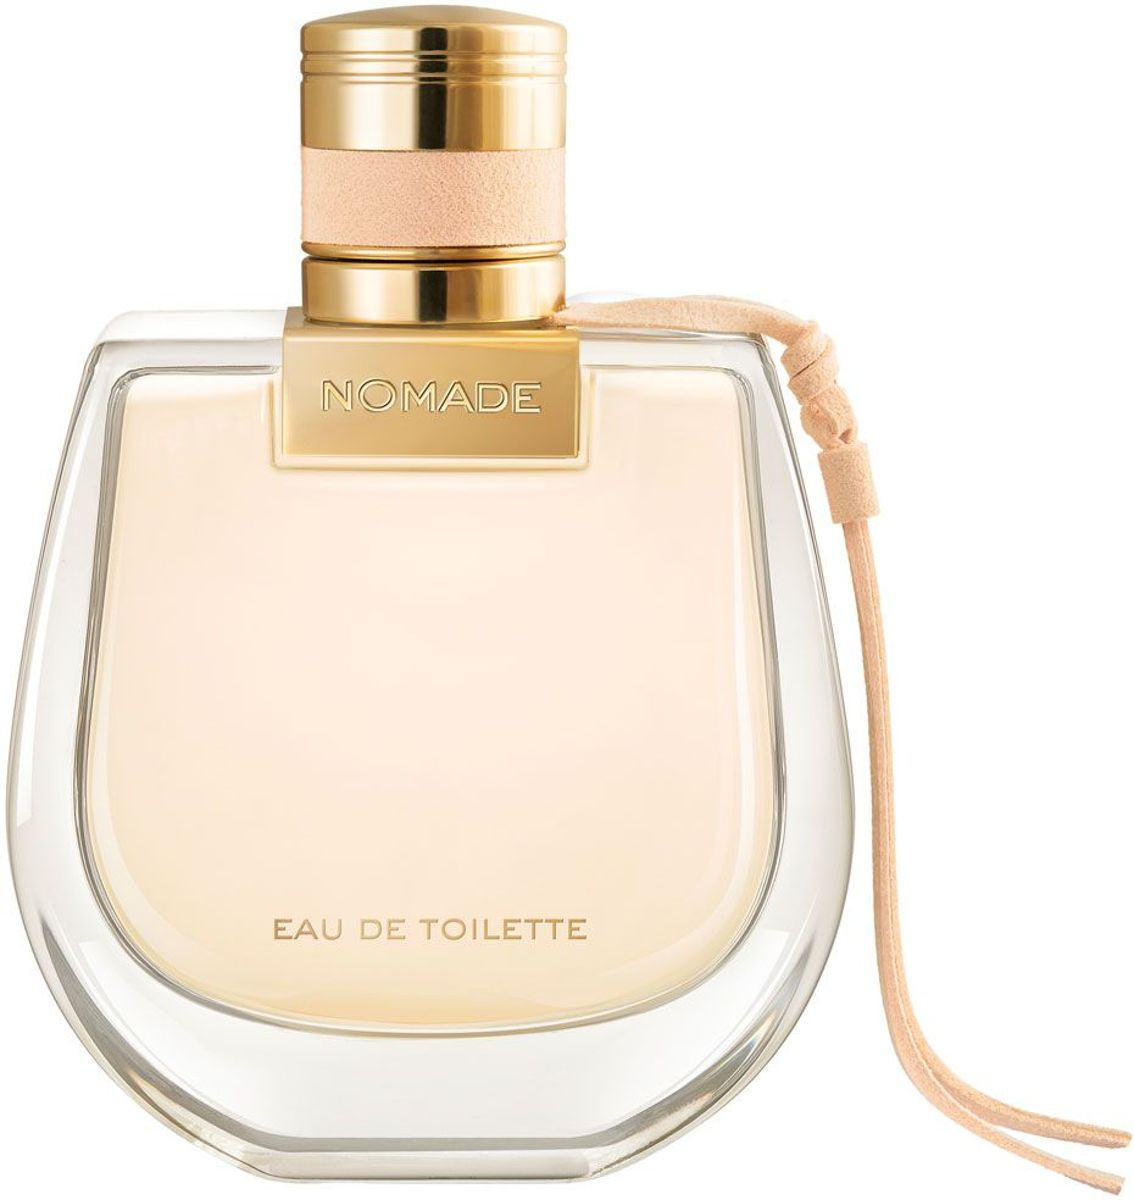 Chloe NOMADE edt spray 75 ml